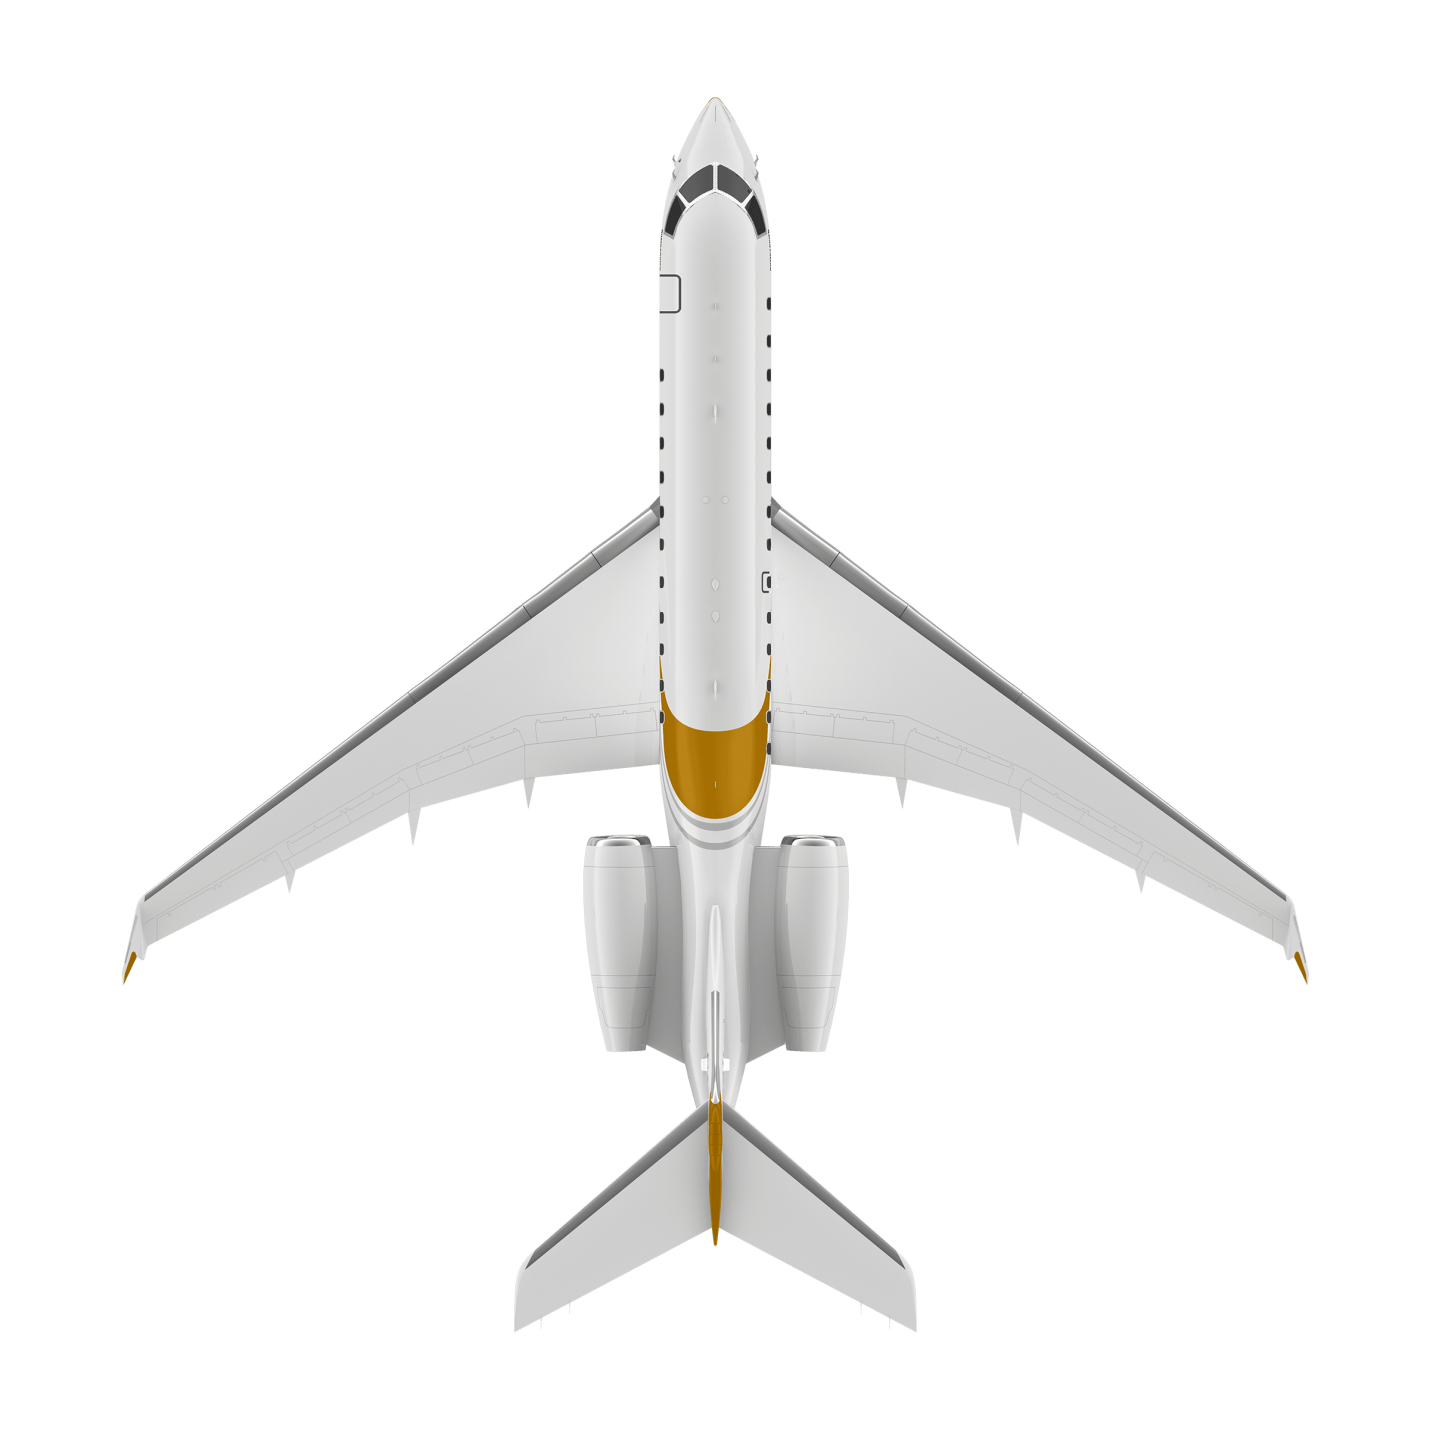 Global 5500 top view